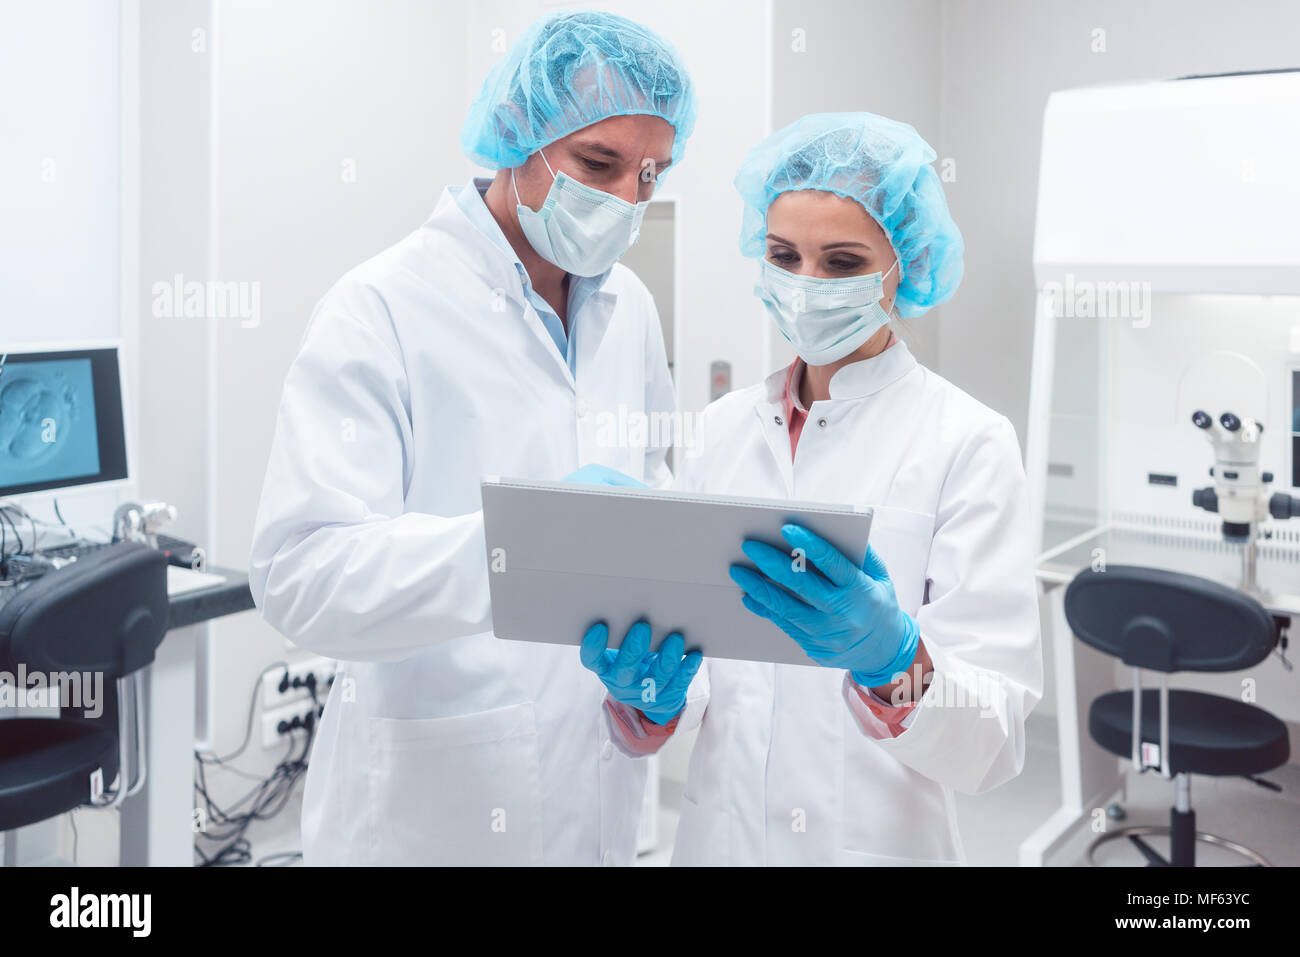 Two scientists working together in lab looking at data - Stock Image